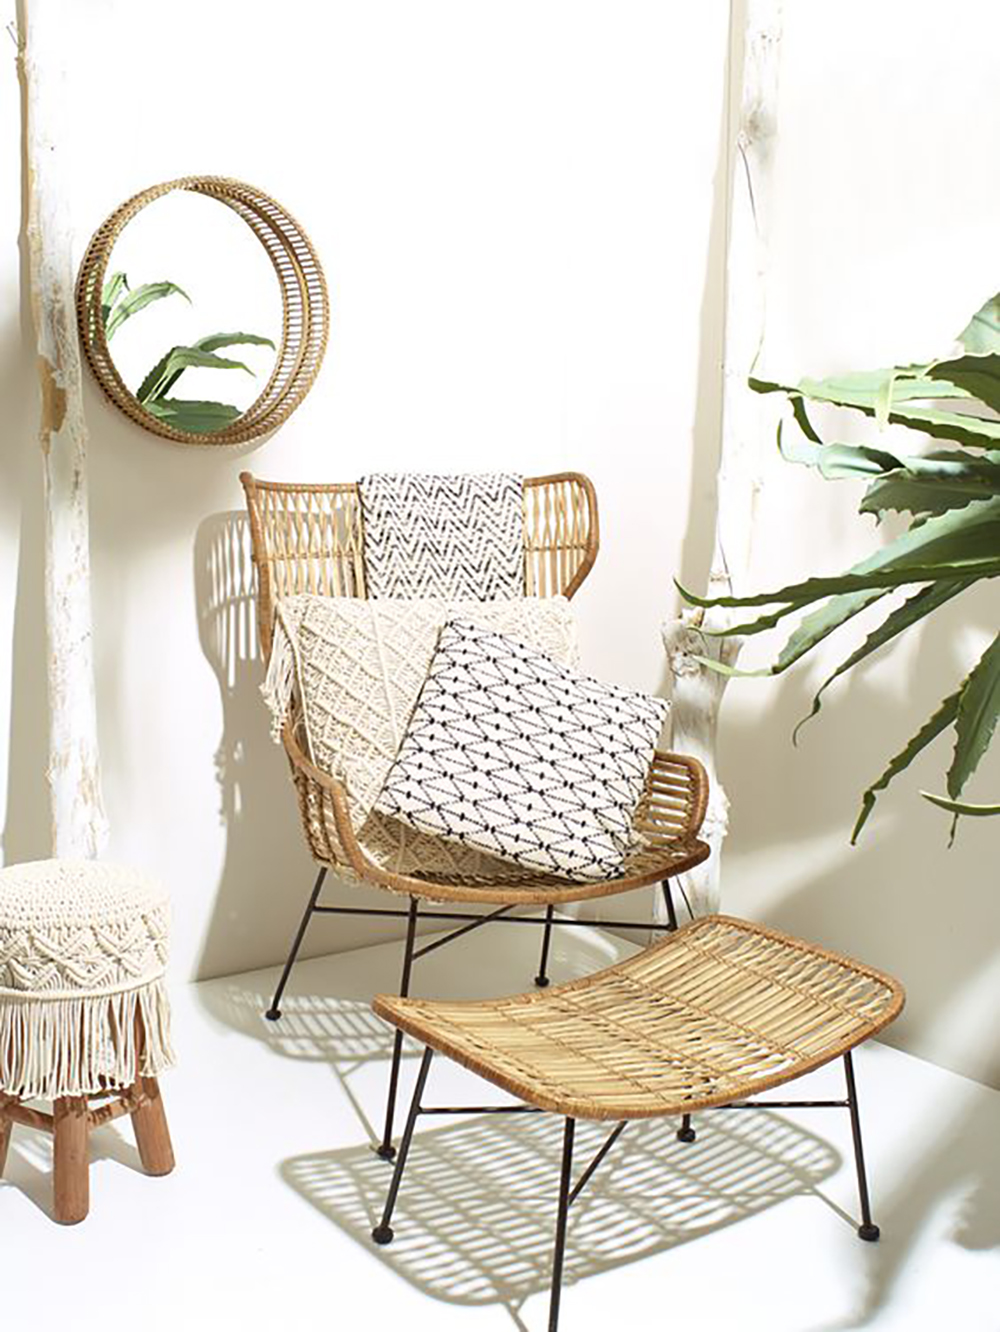 Palermo chair and mirror ALS for natural look - Transform your home into a tropical paradise | Aliz's Wonderland